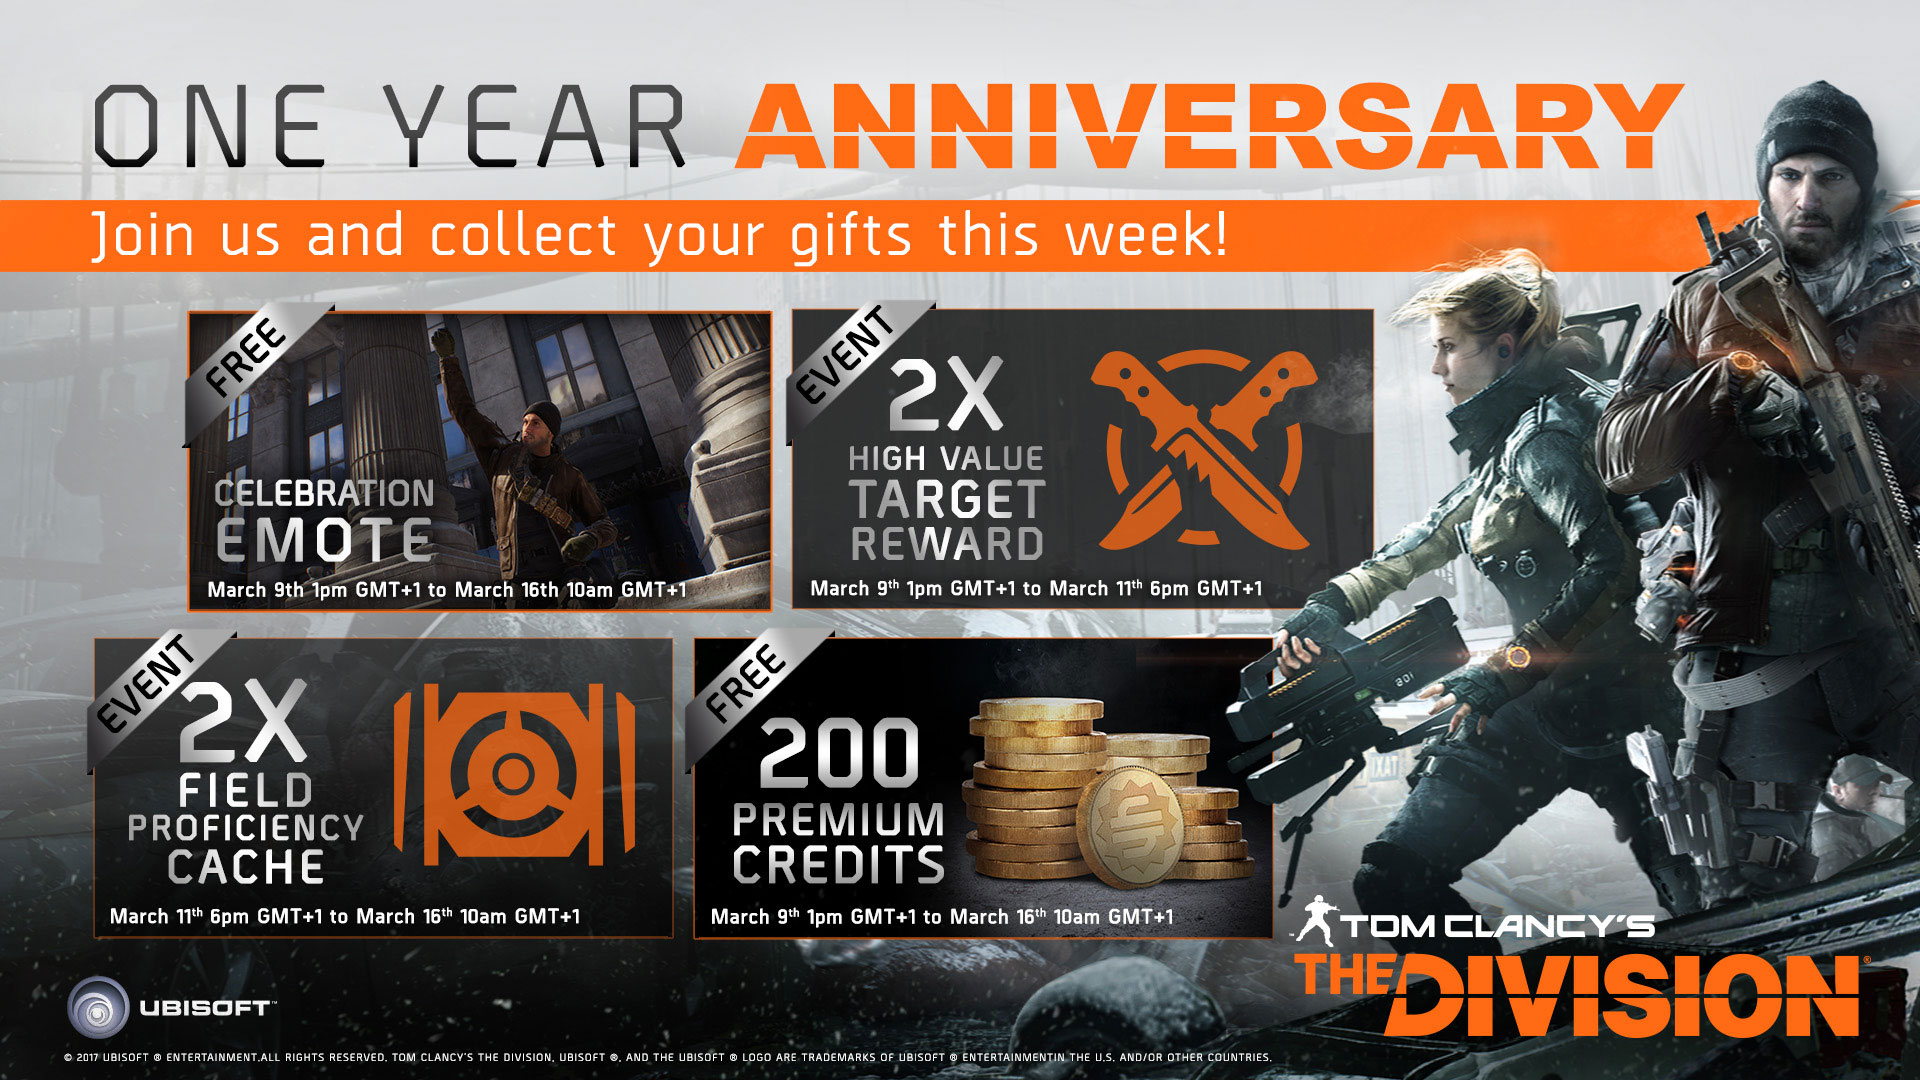 2017-03-09 - Image02 - The Division Anniversary